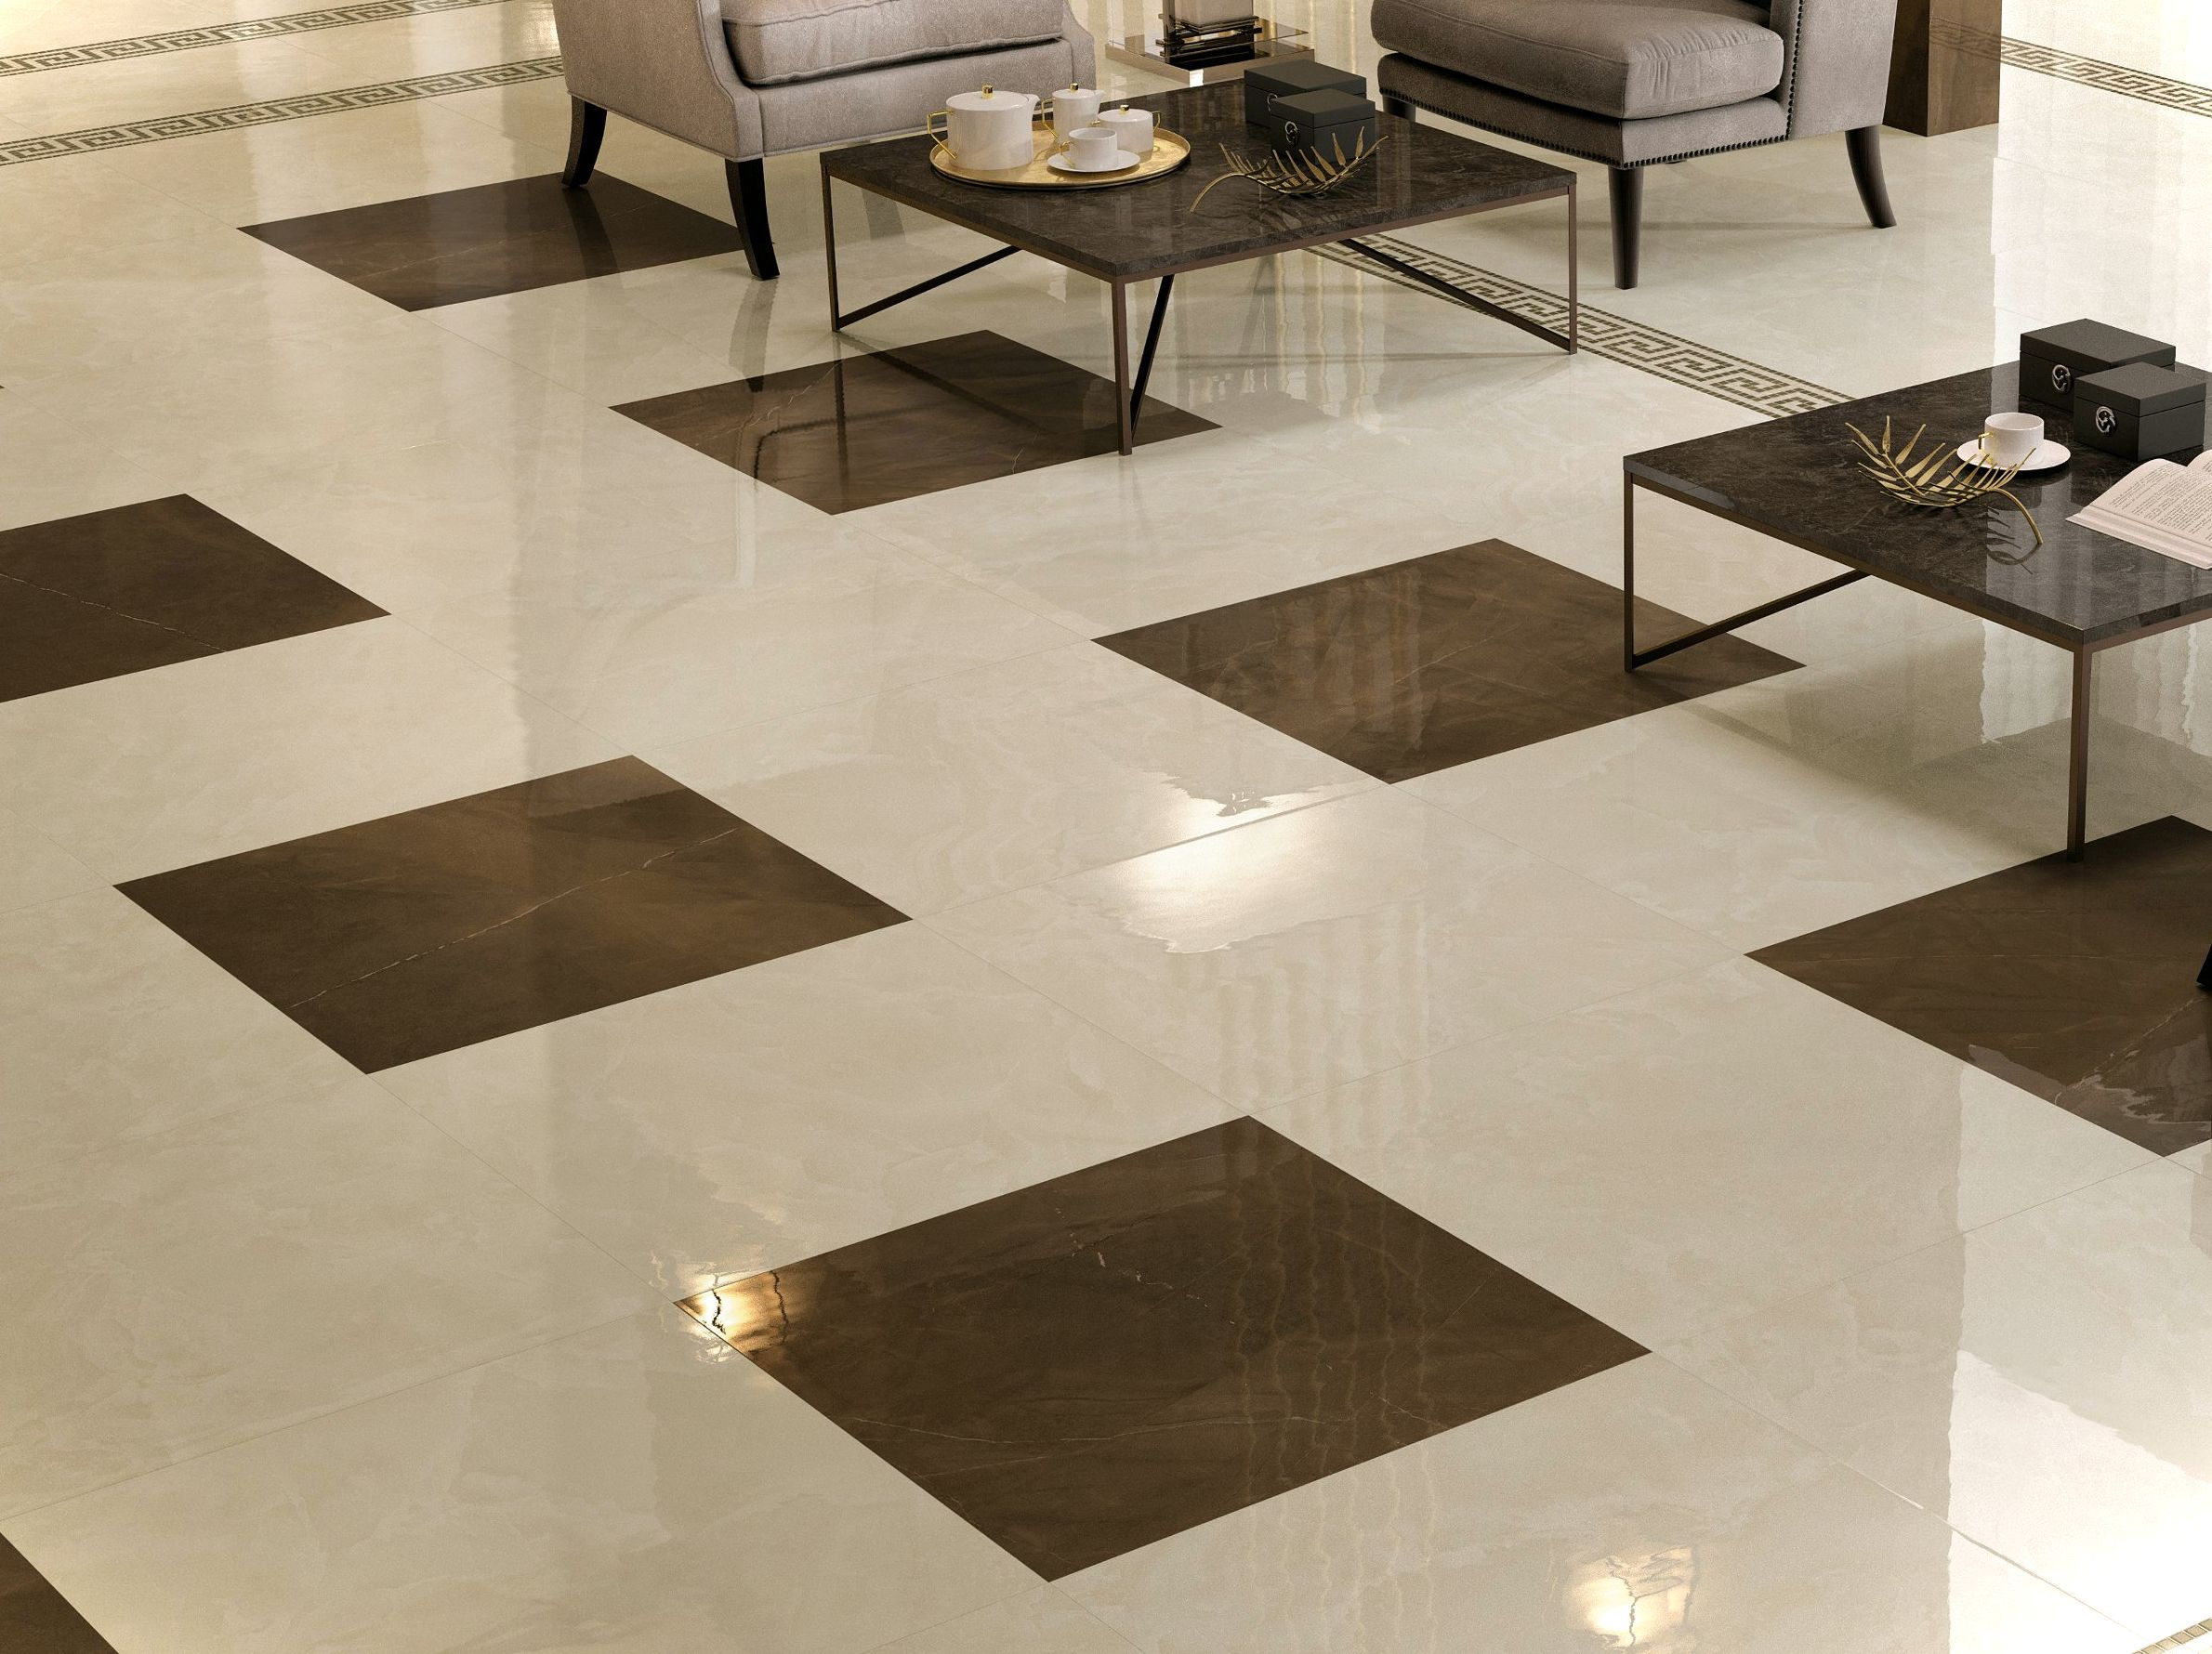 Floor Tiles Design For Small House Contemporary Floors For Your Luxury Home Home Decor Ideas